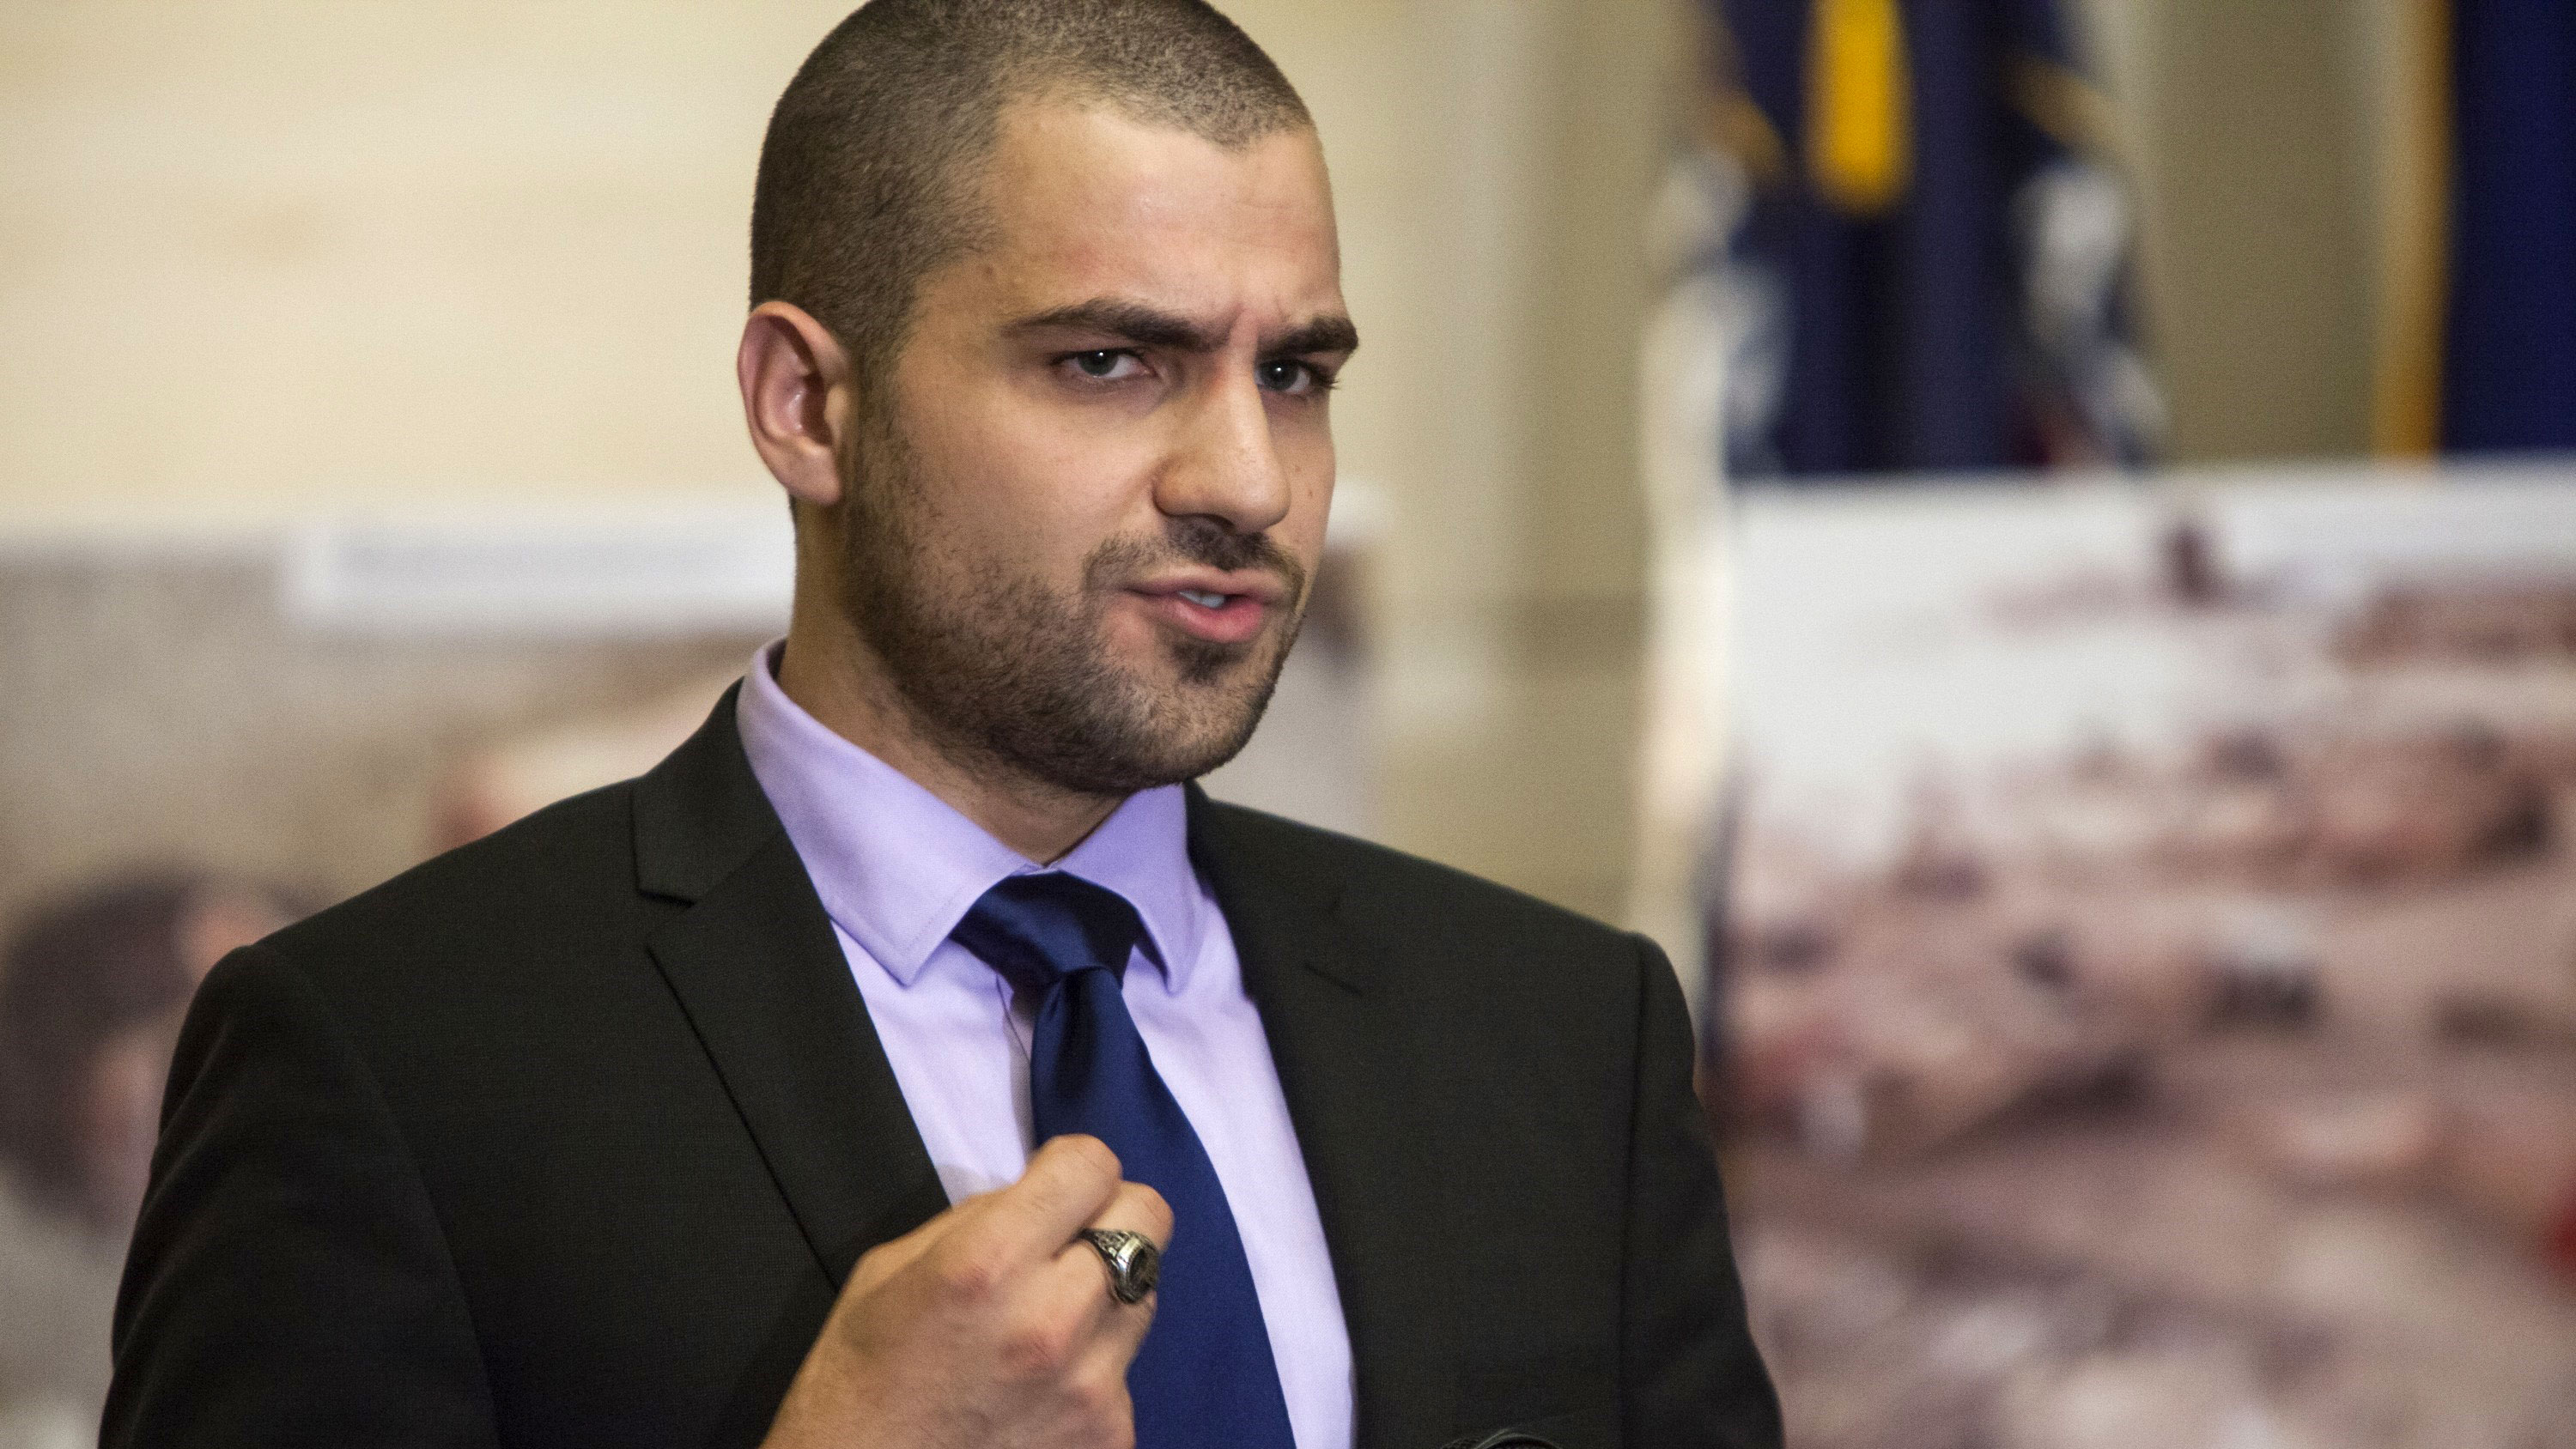 A graduation 12 years in the making: One Syrian activist's road to his college degree